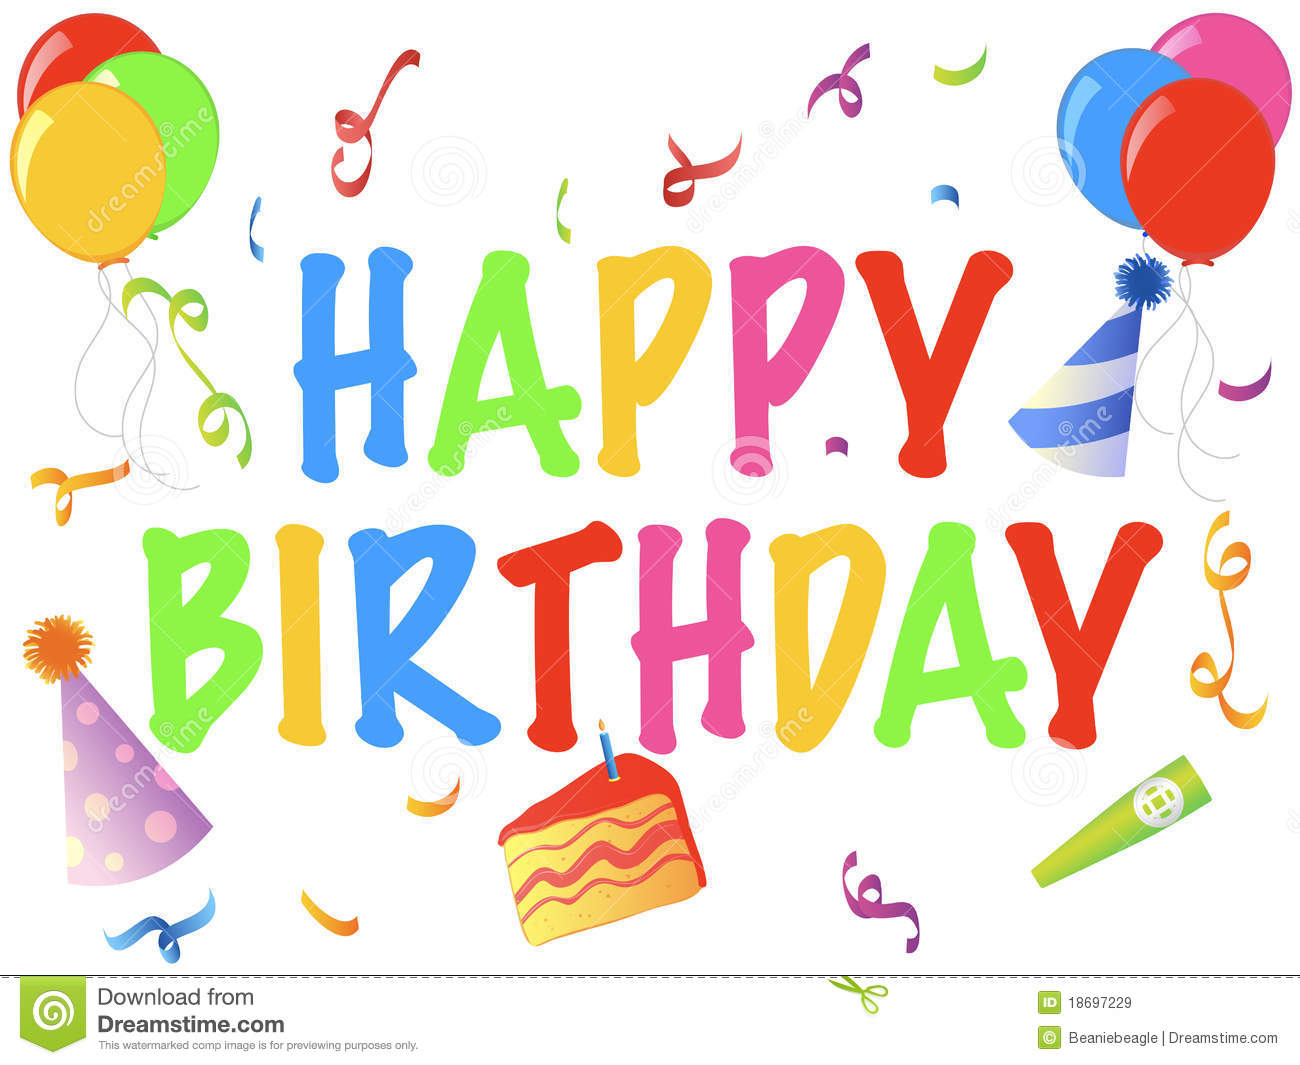 happy birthday banner royalty free stock images  image: 18697229